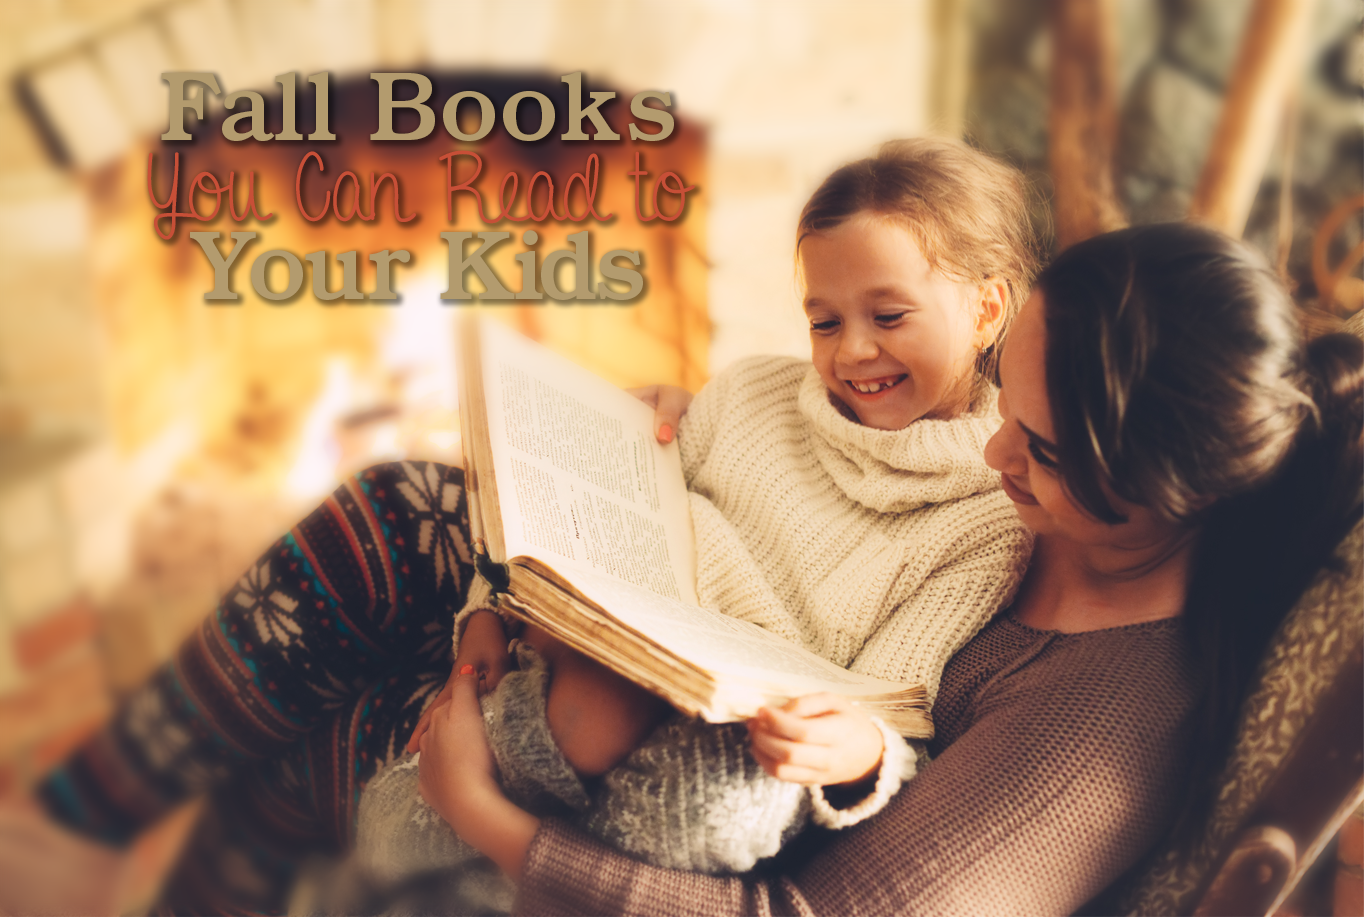 Our Favorite Fall Books You Should Read to Your Kids